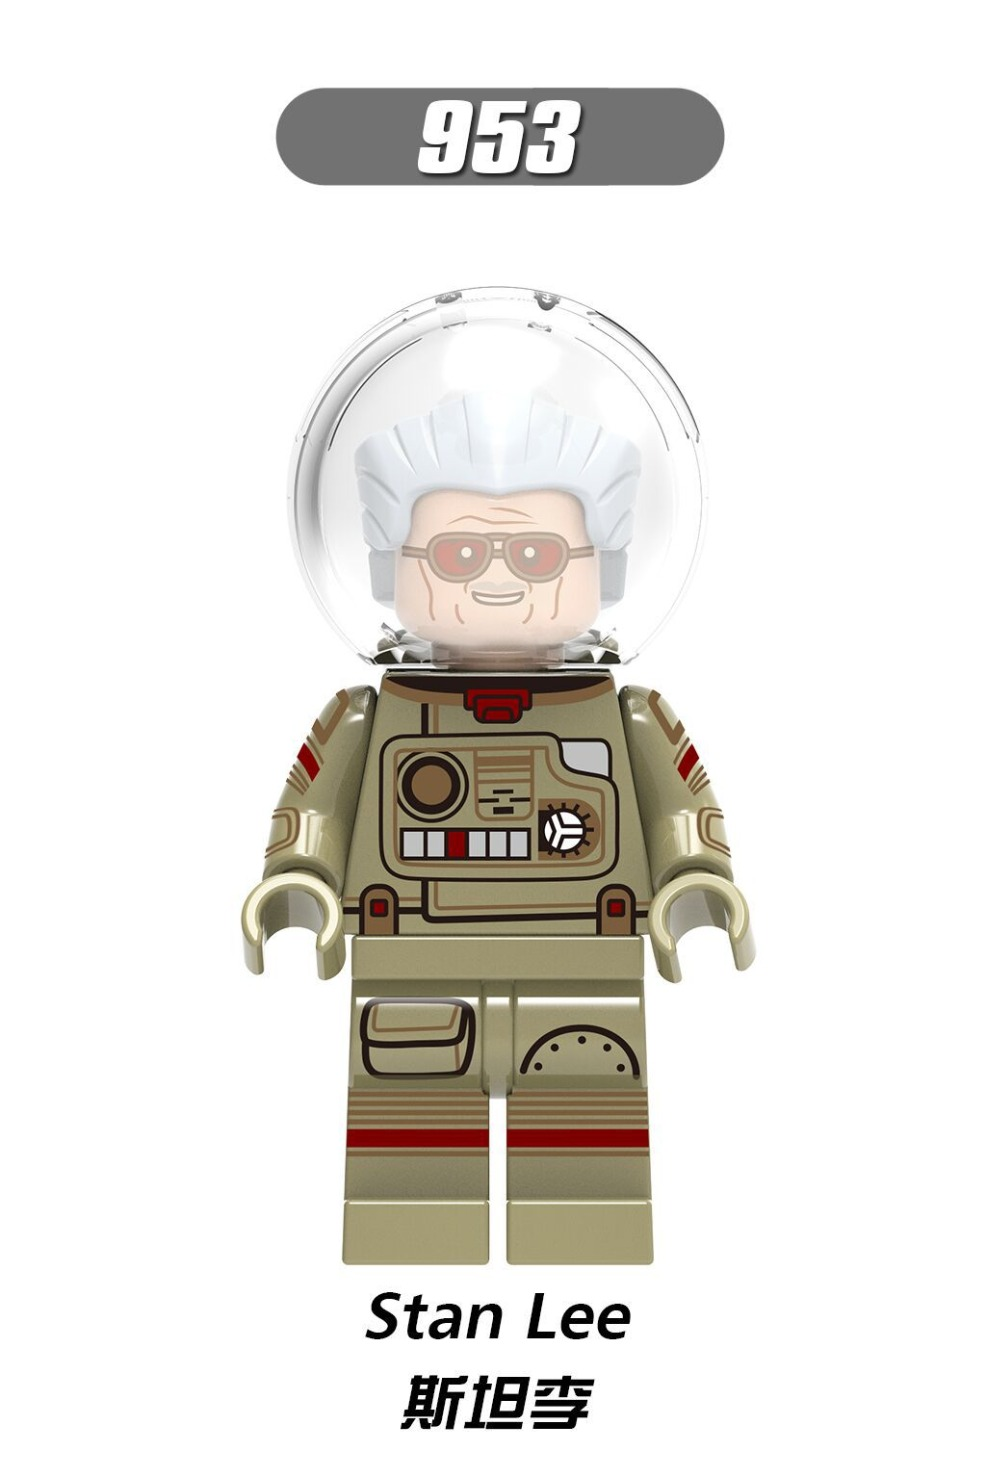 X0218 AvengersING Marvel role compatible LegoINGls team leader Vulture Small pepper Phantom Collection child Building module toy in Action Toy Figures from Toys Hobbies